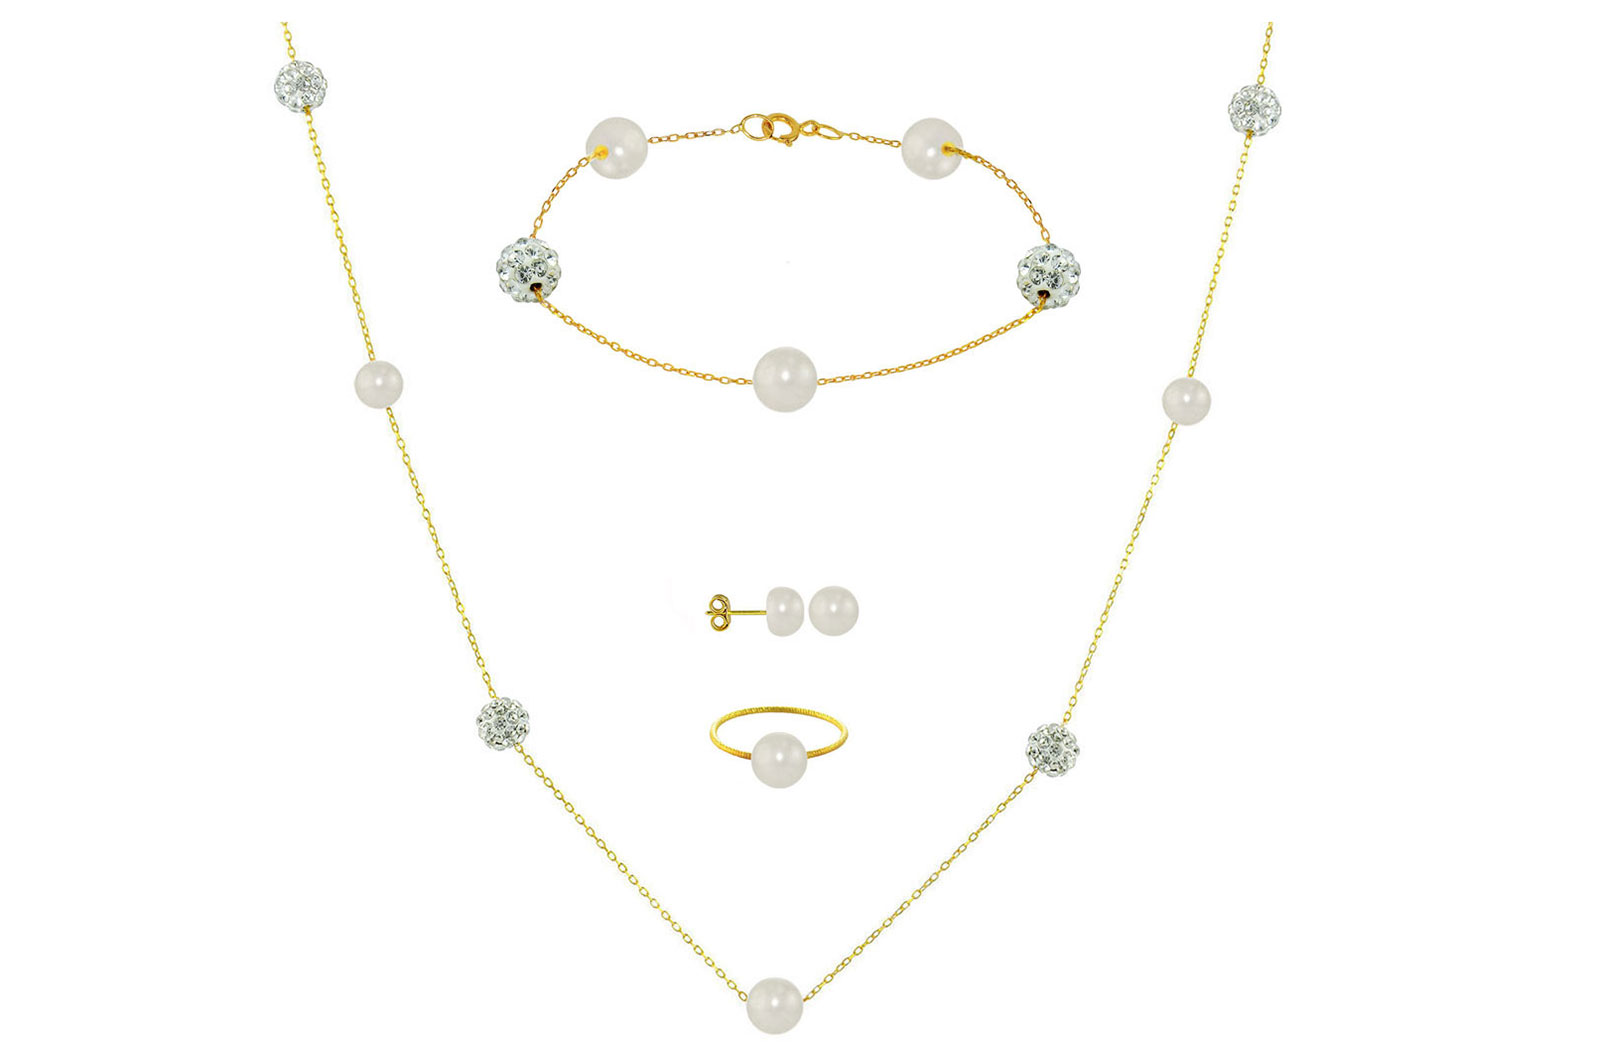 Vera Perla 18K Solid Gold Gradual Built-in 5-6mm White Pearls and Crystal Ball Jewelry Set - 4 pcs.